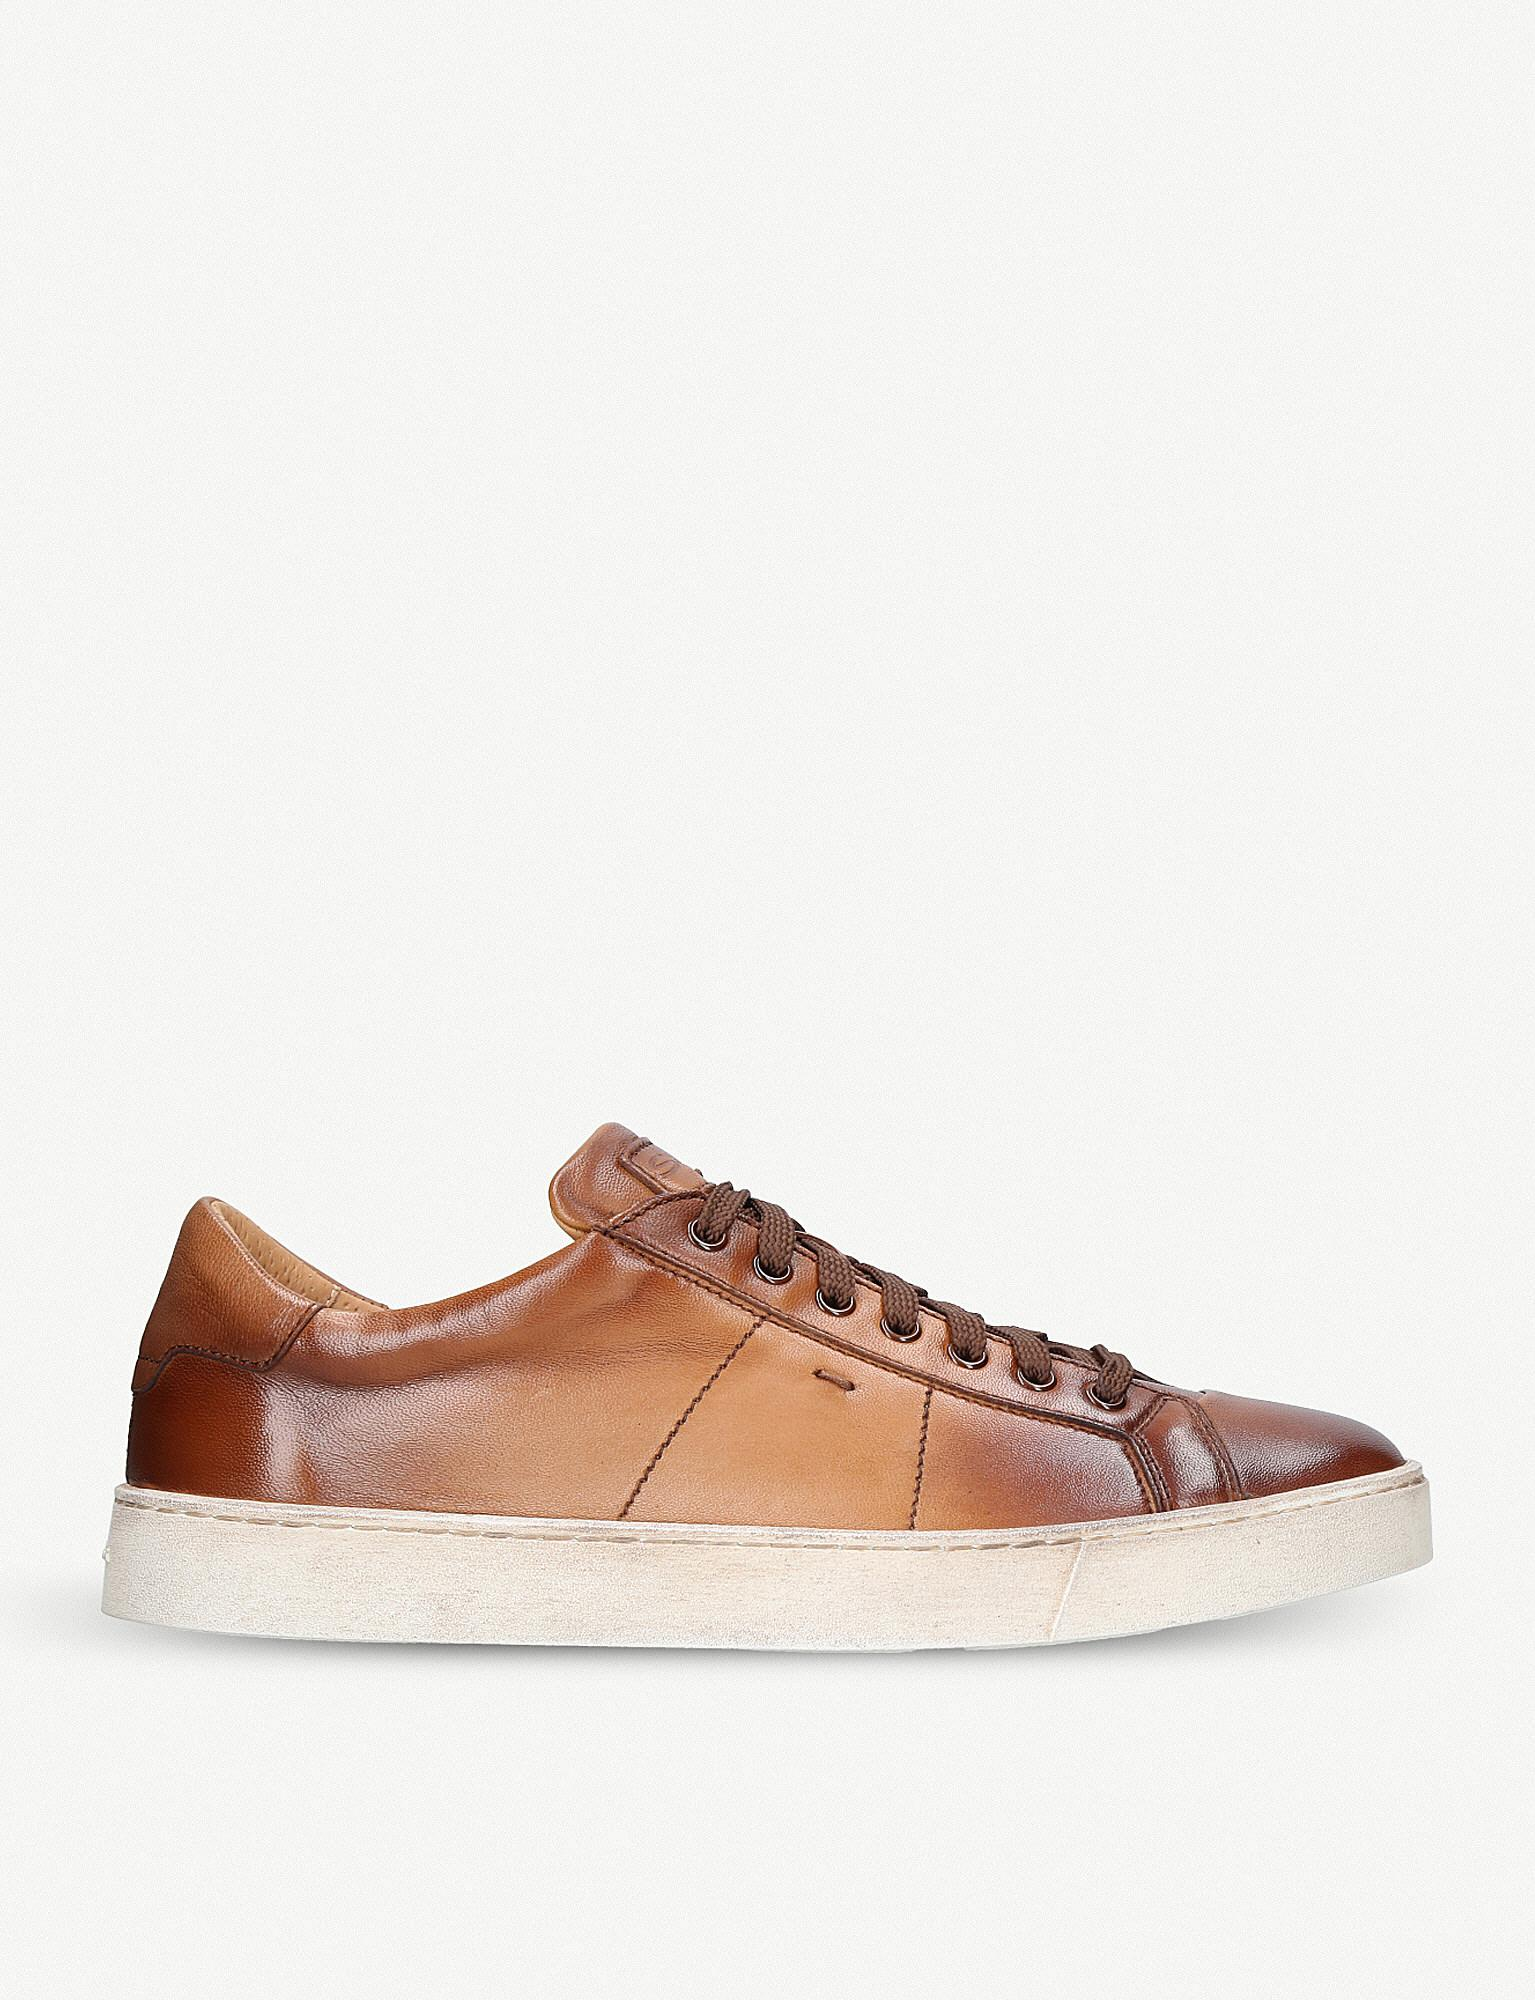 santoni Leather Low Trainers injptsdLy